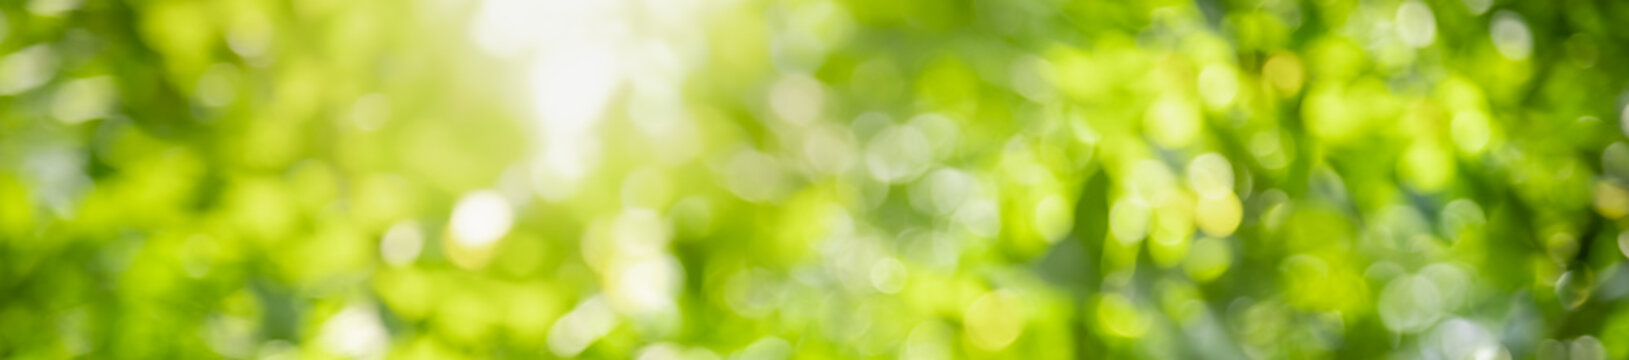 Abstract blurred out of focus and blurred green leaf background under sunlight with bokeh and copy space using as background natural plants landscape, ecology cover concept.